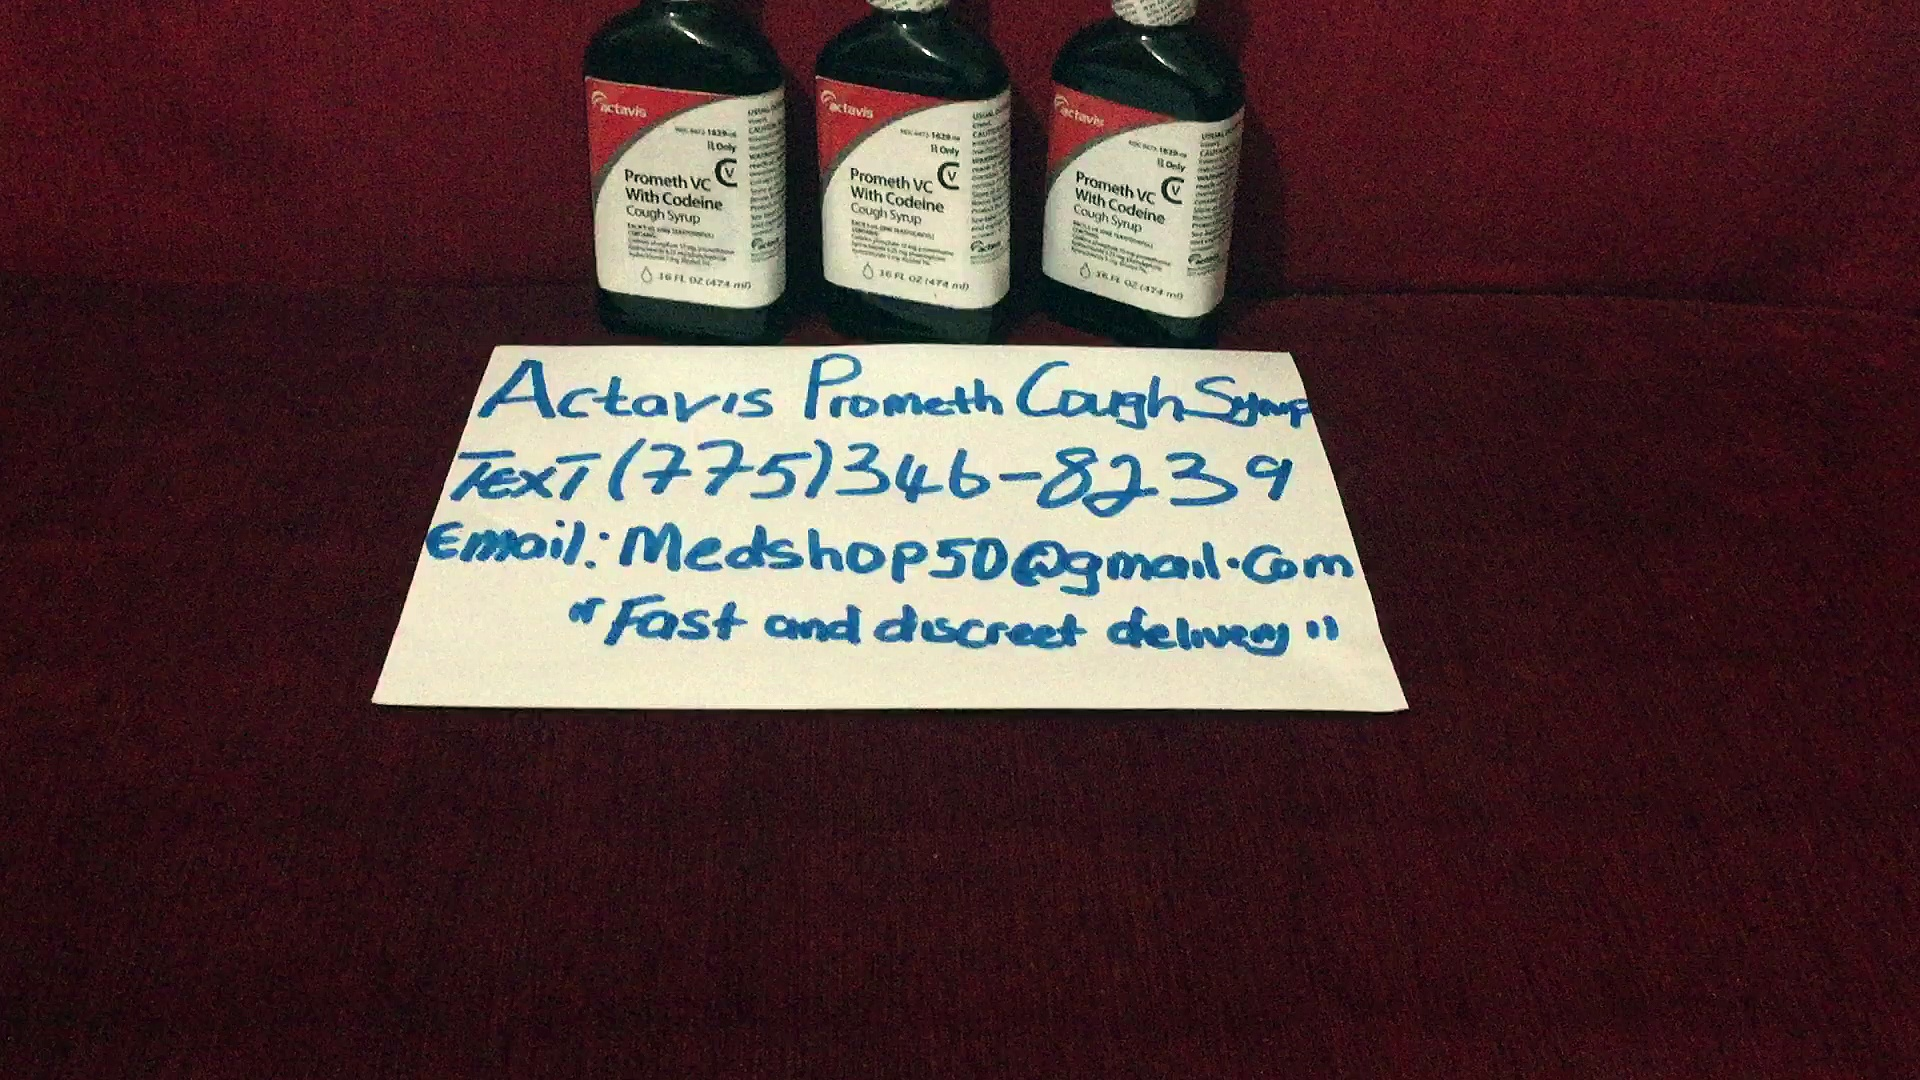 Actavis promethazine with codeine cough syrup available